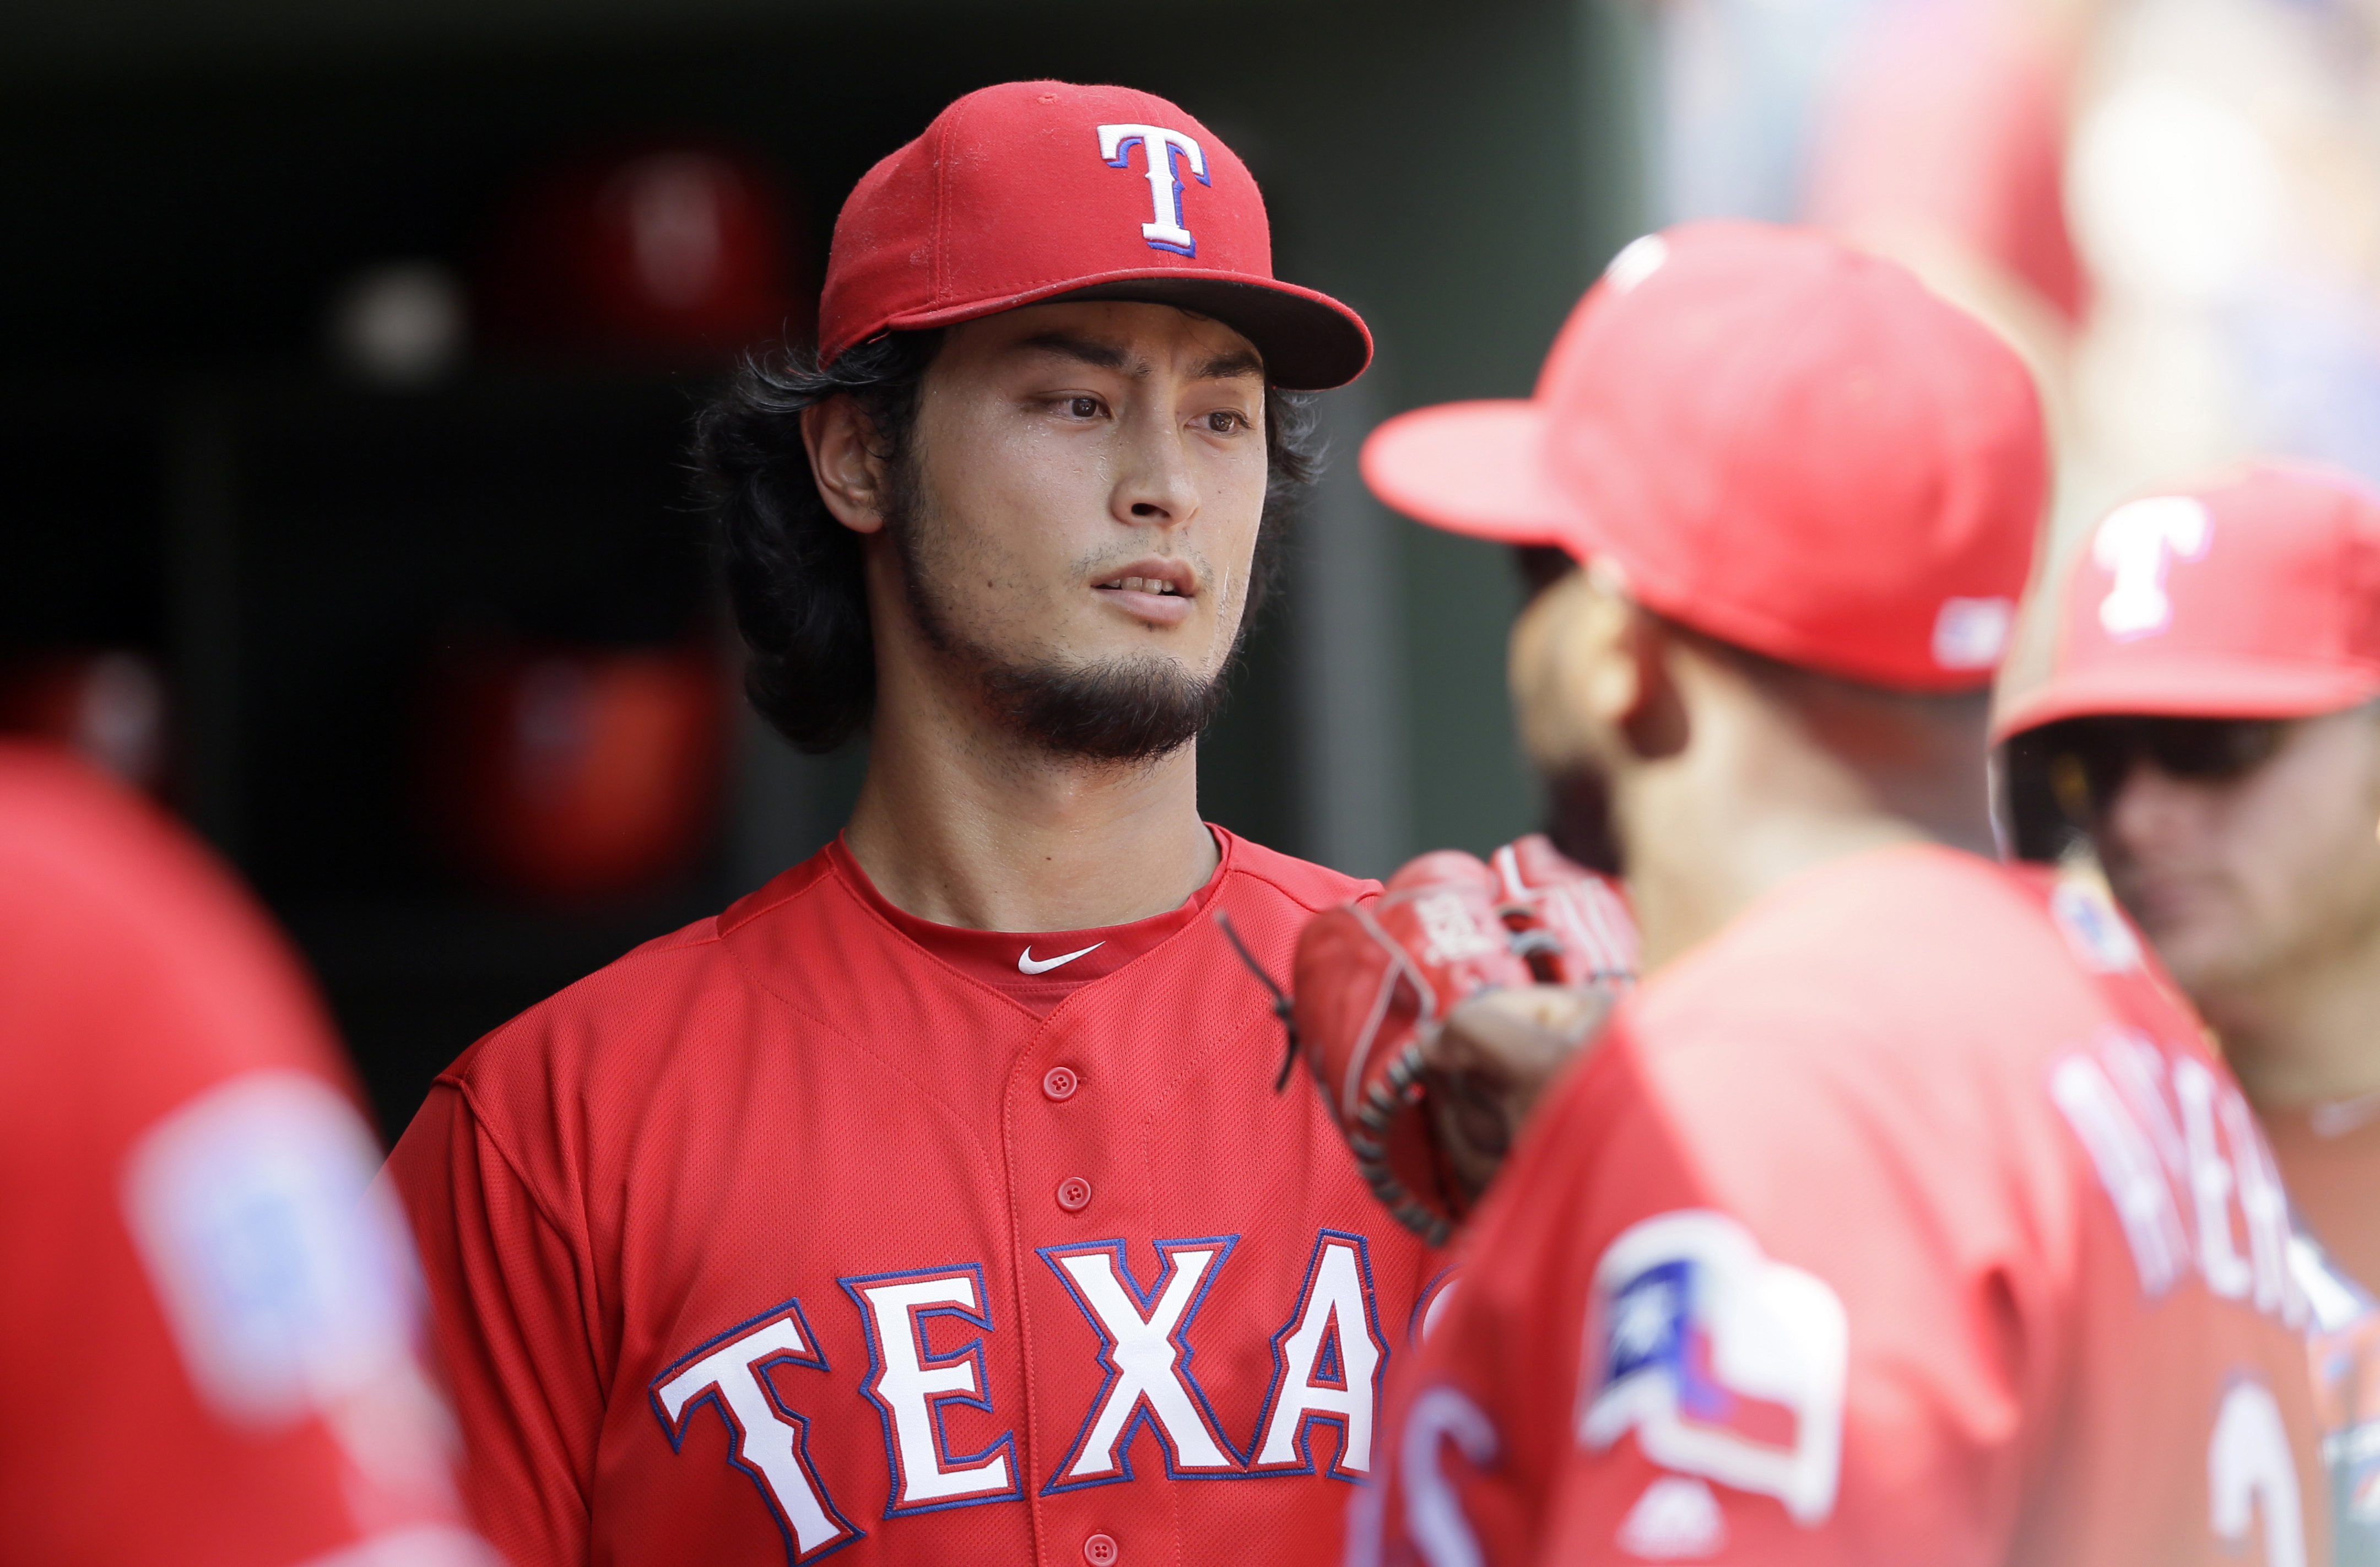 Texas Rangers starting pitcher Yu Darvish, of Japan, walks into the dugout after the third inning of a baseball game against the Houston Astros in Arlington, Texas, Sunday, Sept. 4, 2016. (AP Photo/LM Otero)